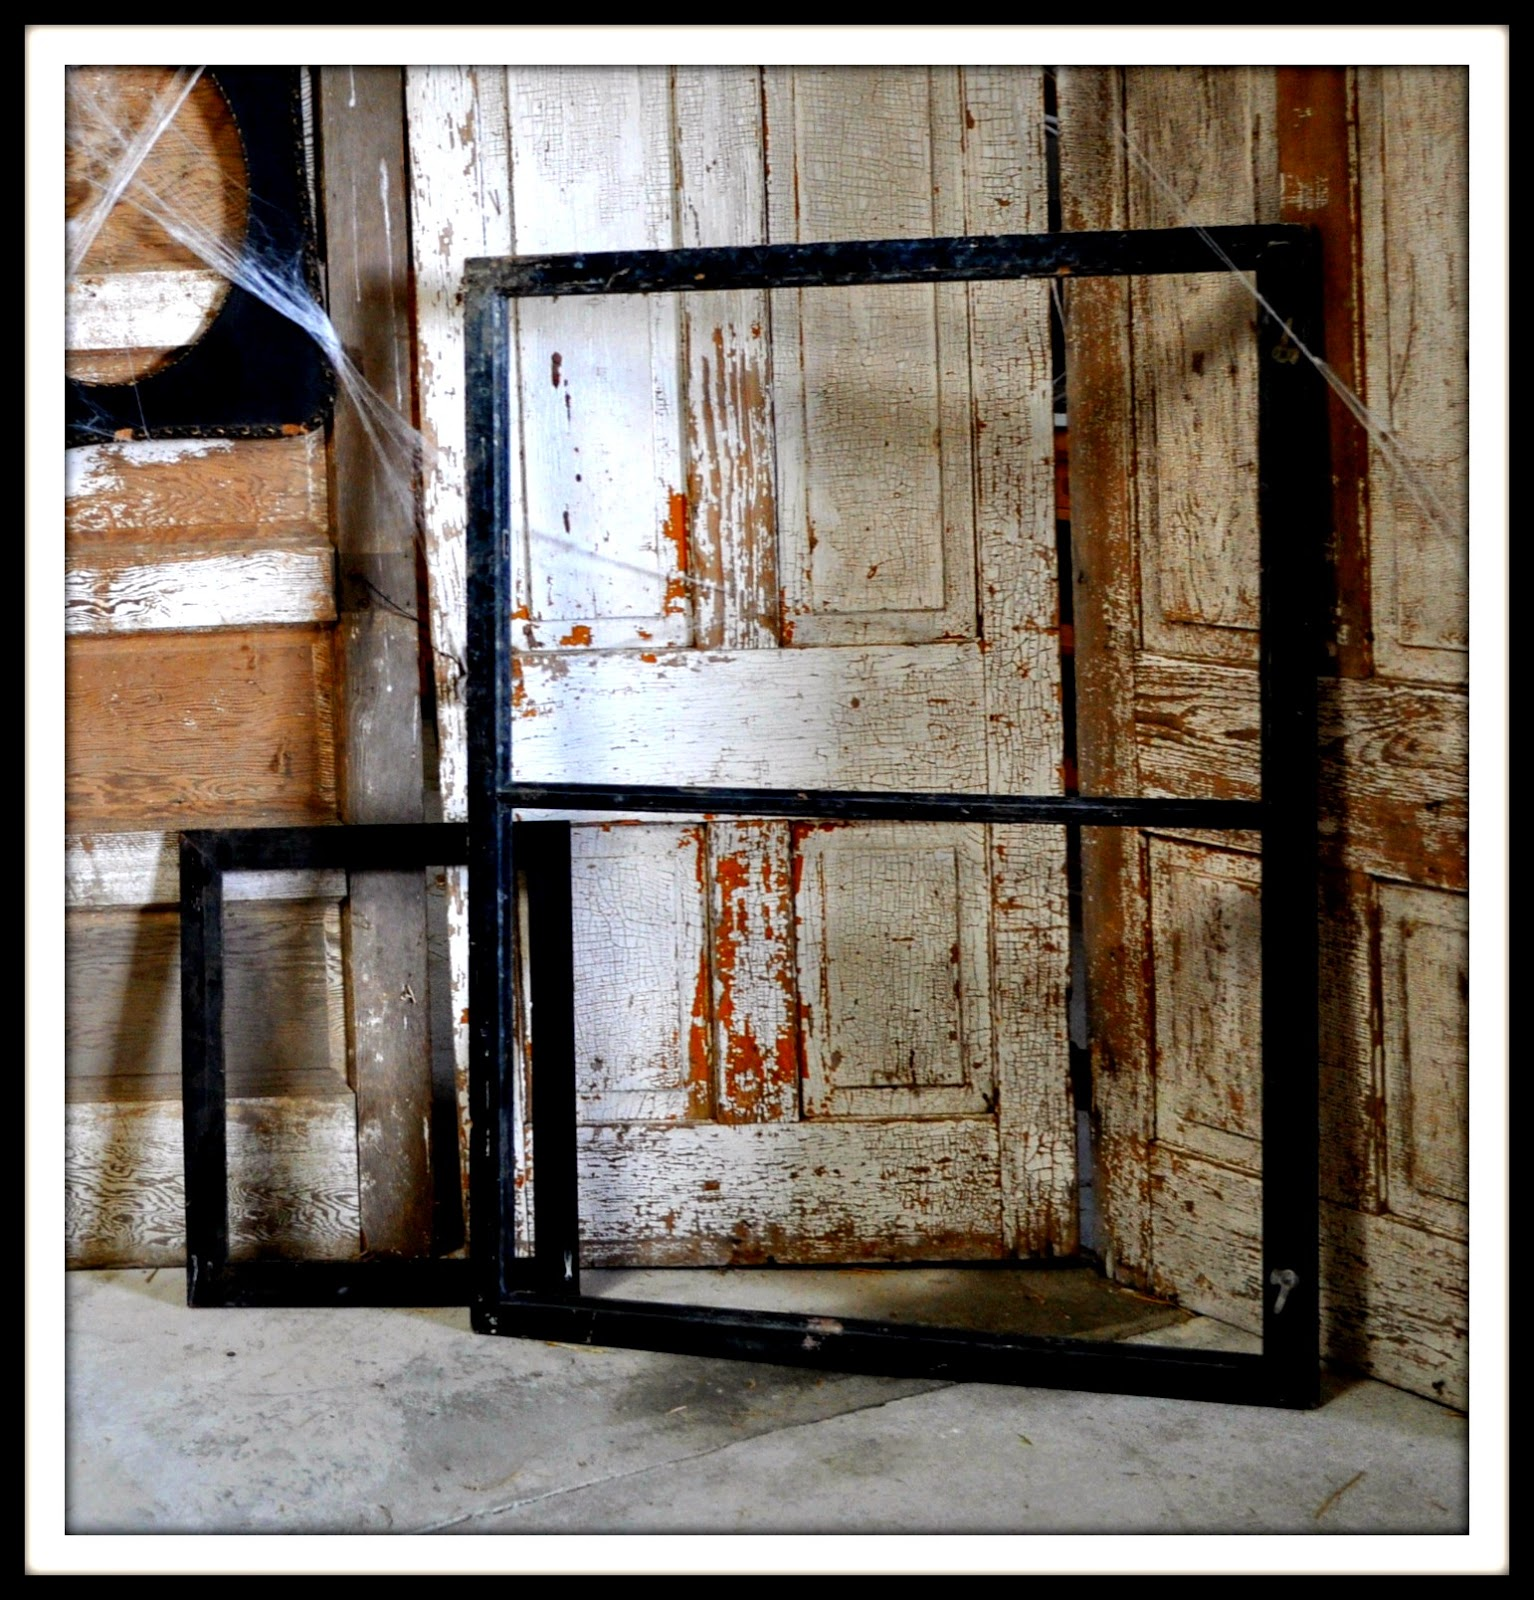 a large black wooden frame and an extra large old window frame were provided for people to pose behind if they wished but pictures looked good without the